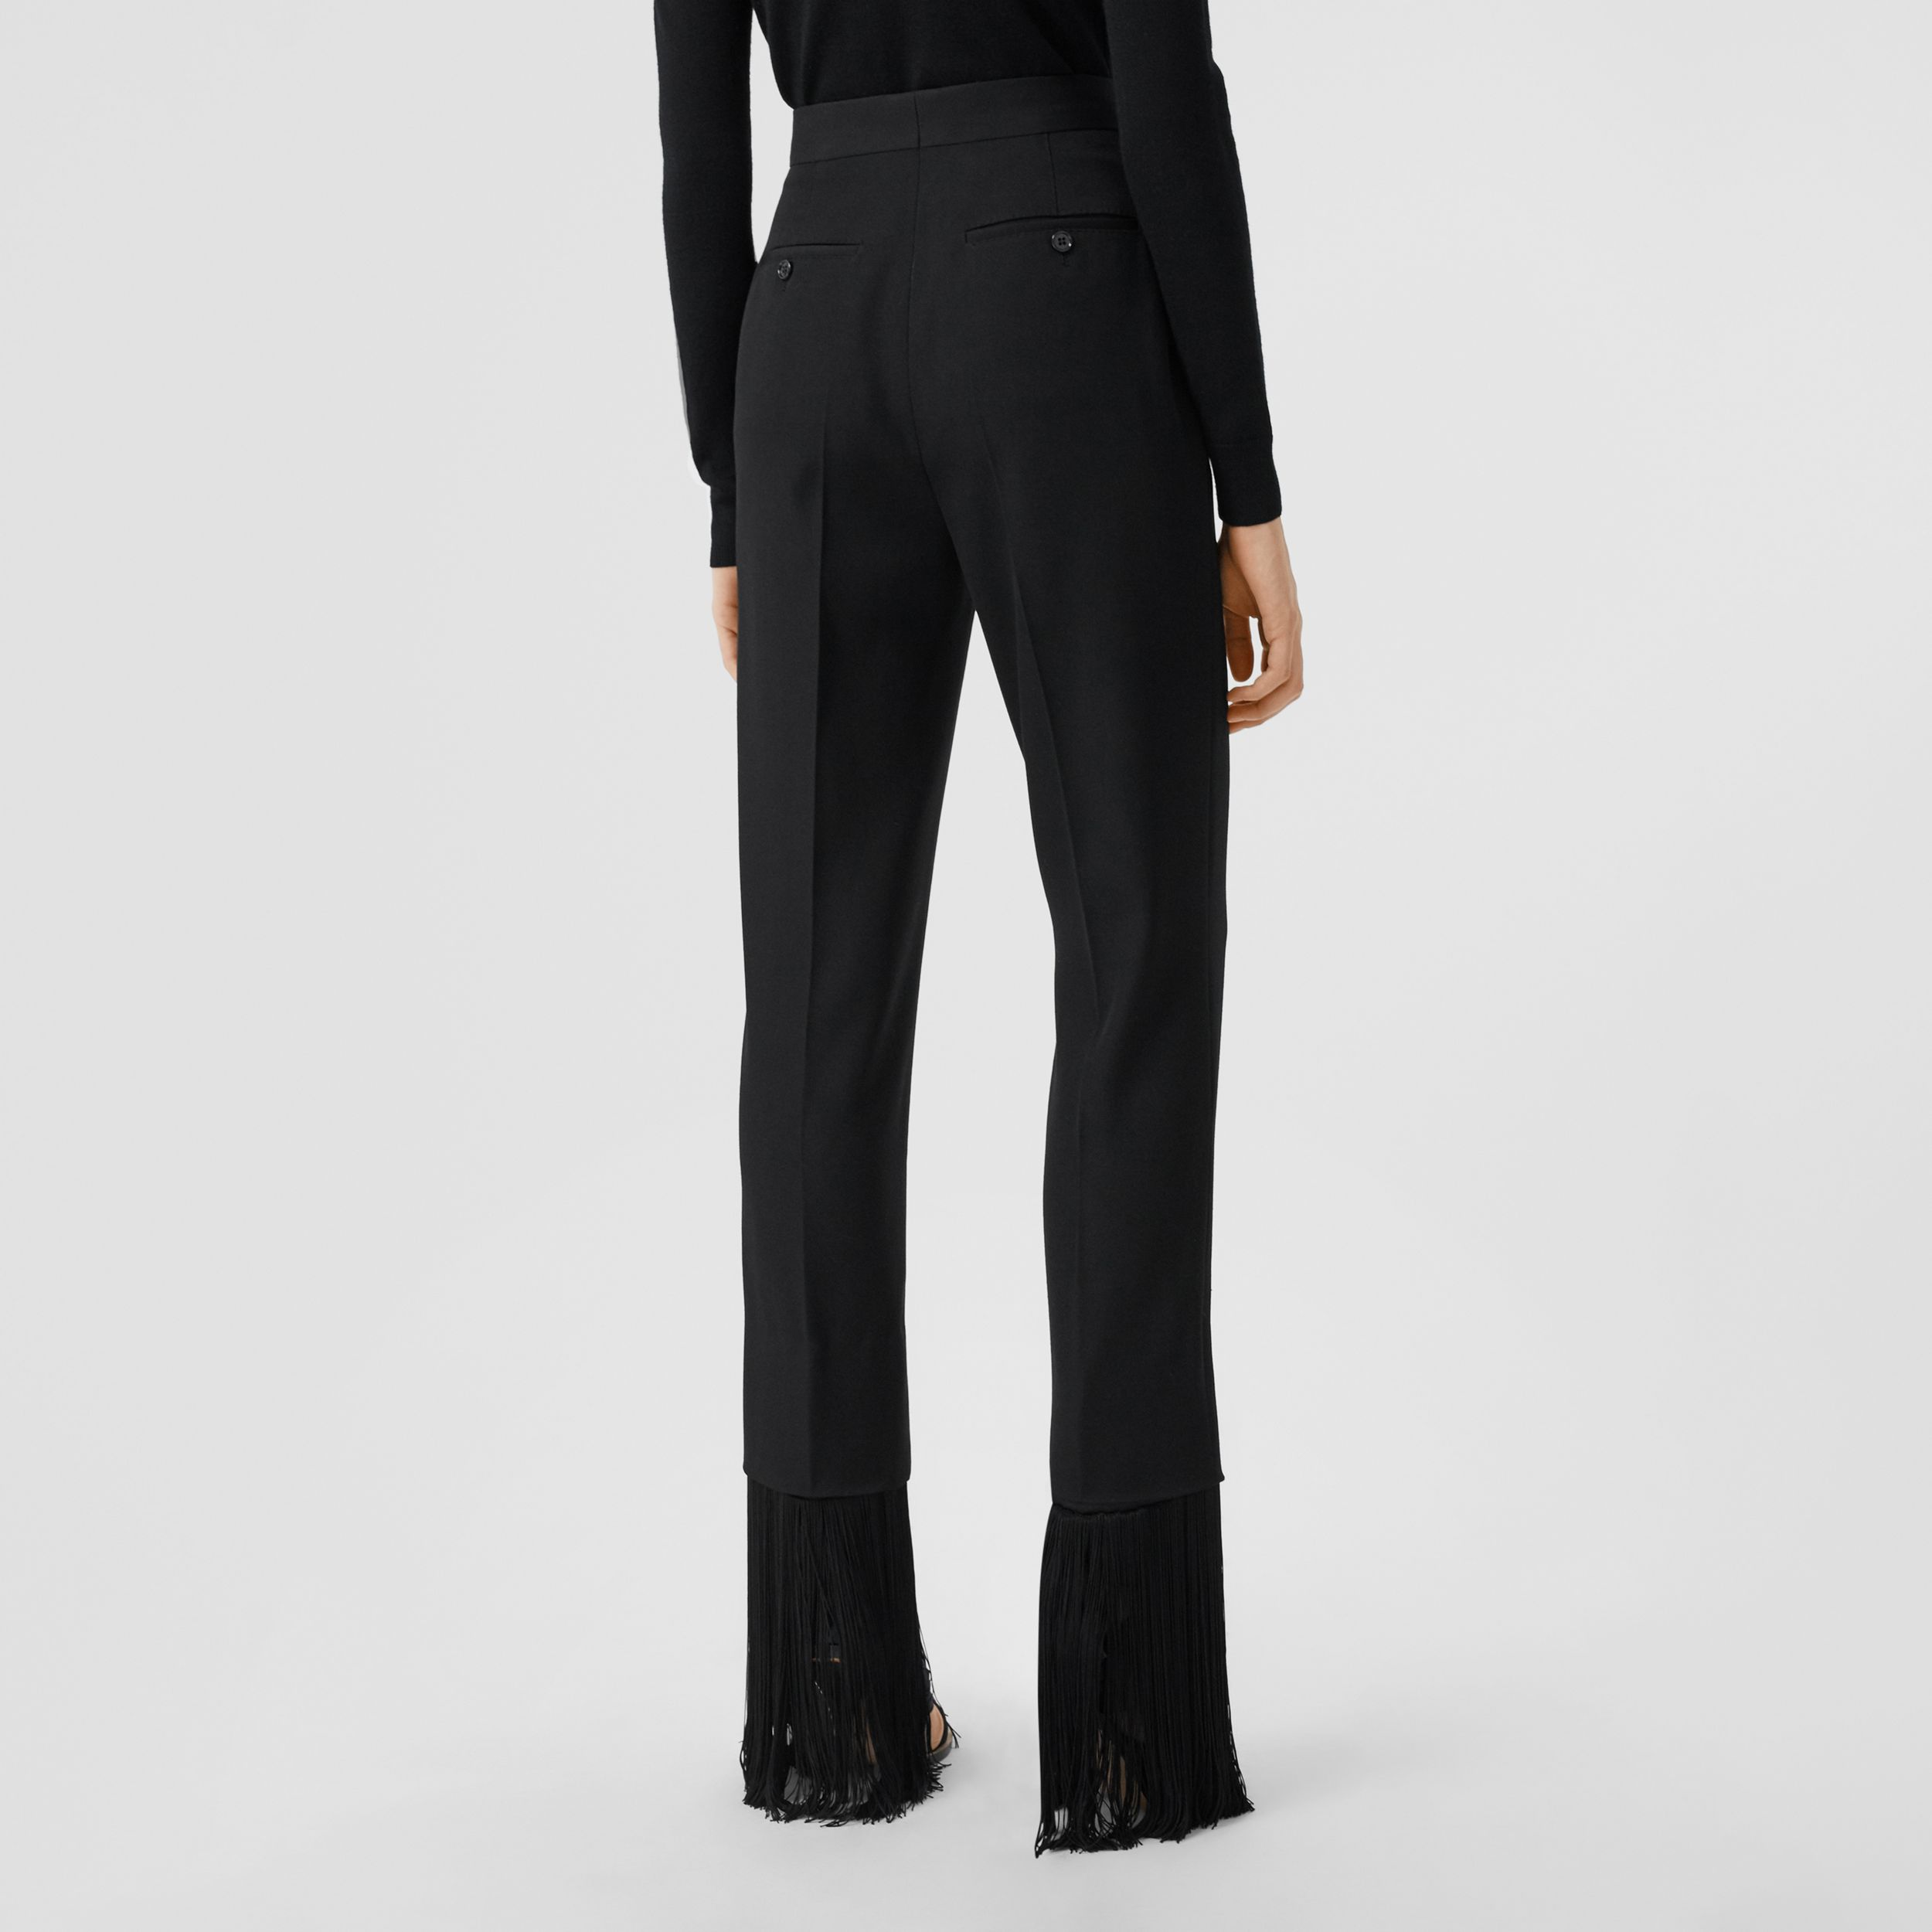 Fringed Grain De Poudre Wool Tailored Trousers in Black - Women | Burberry Hong Kong S.A.R. - 3